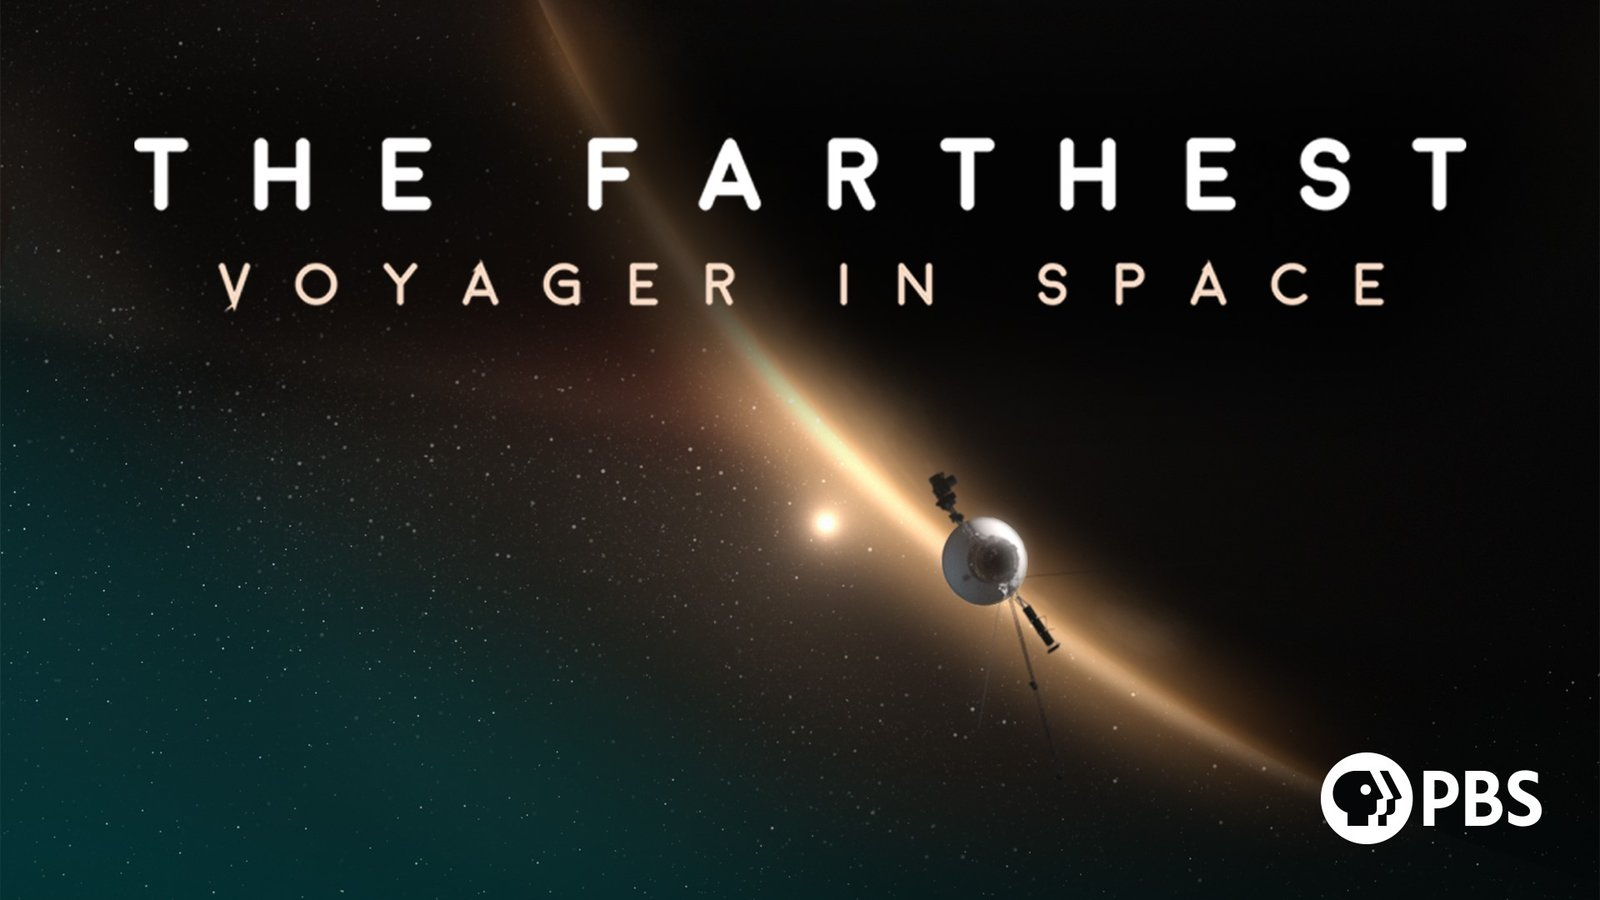 The Farthest – Voyager in Space